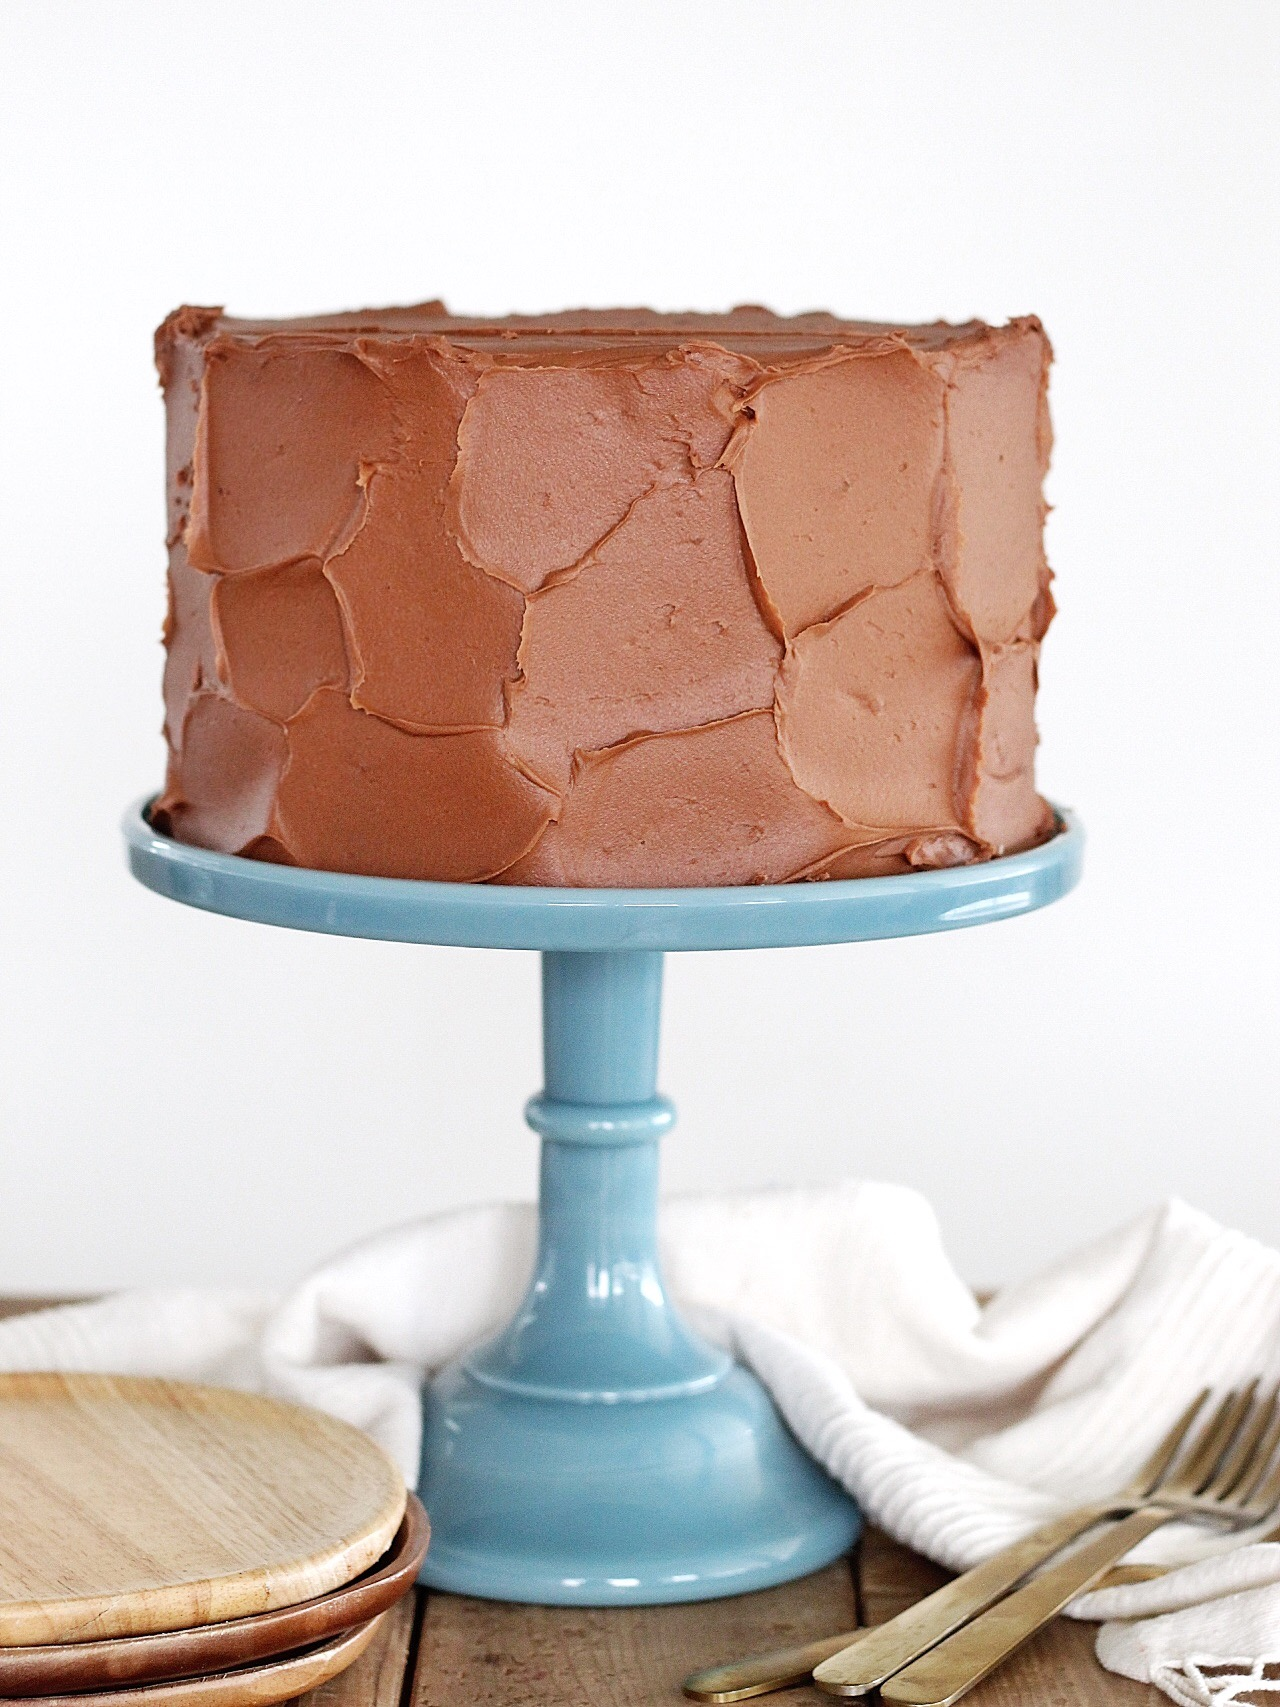 Peanut Butter Cake with Chocolate Buttercream #cakebycourtney #peanutbuttercake #chocolatebuttercream #easychocolatebuttercream #easycakerecipe #besteverbuttercream #cake #cakerecipe